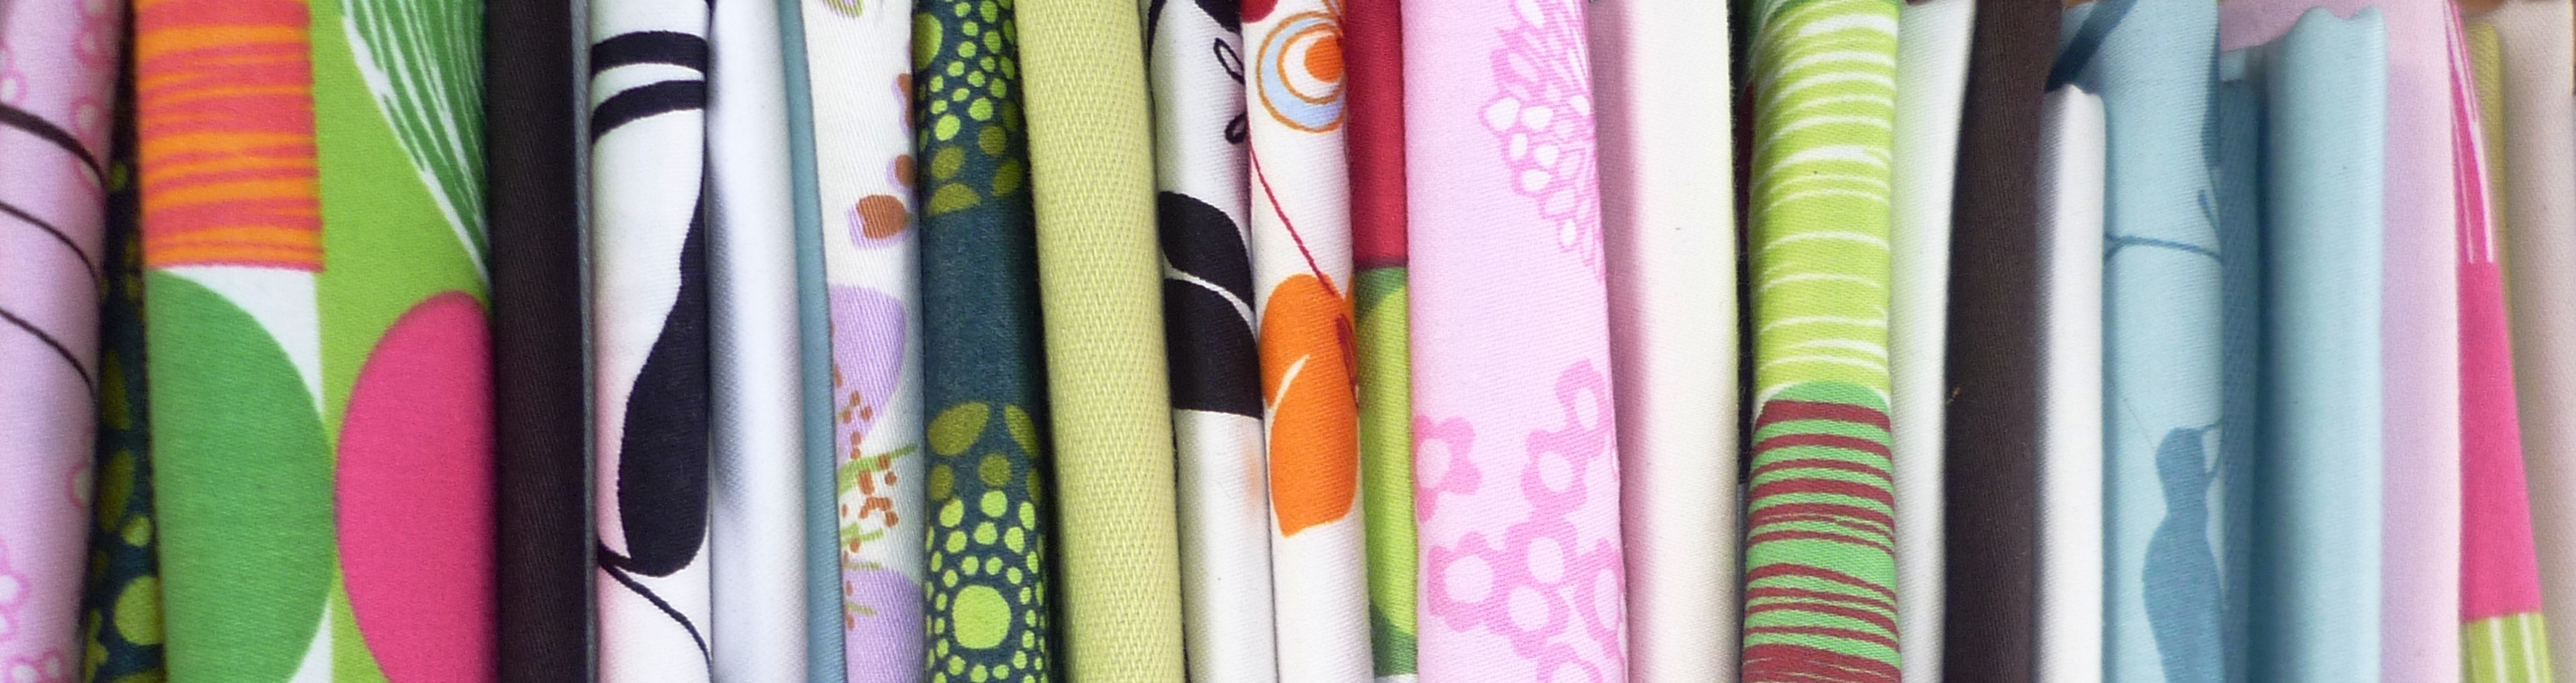 cotton fabric wholesale distributors fabric material suppliers